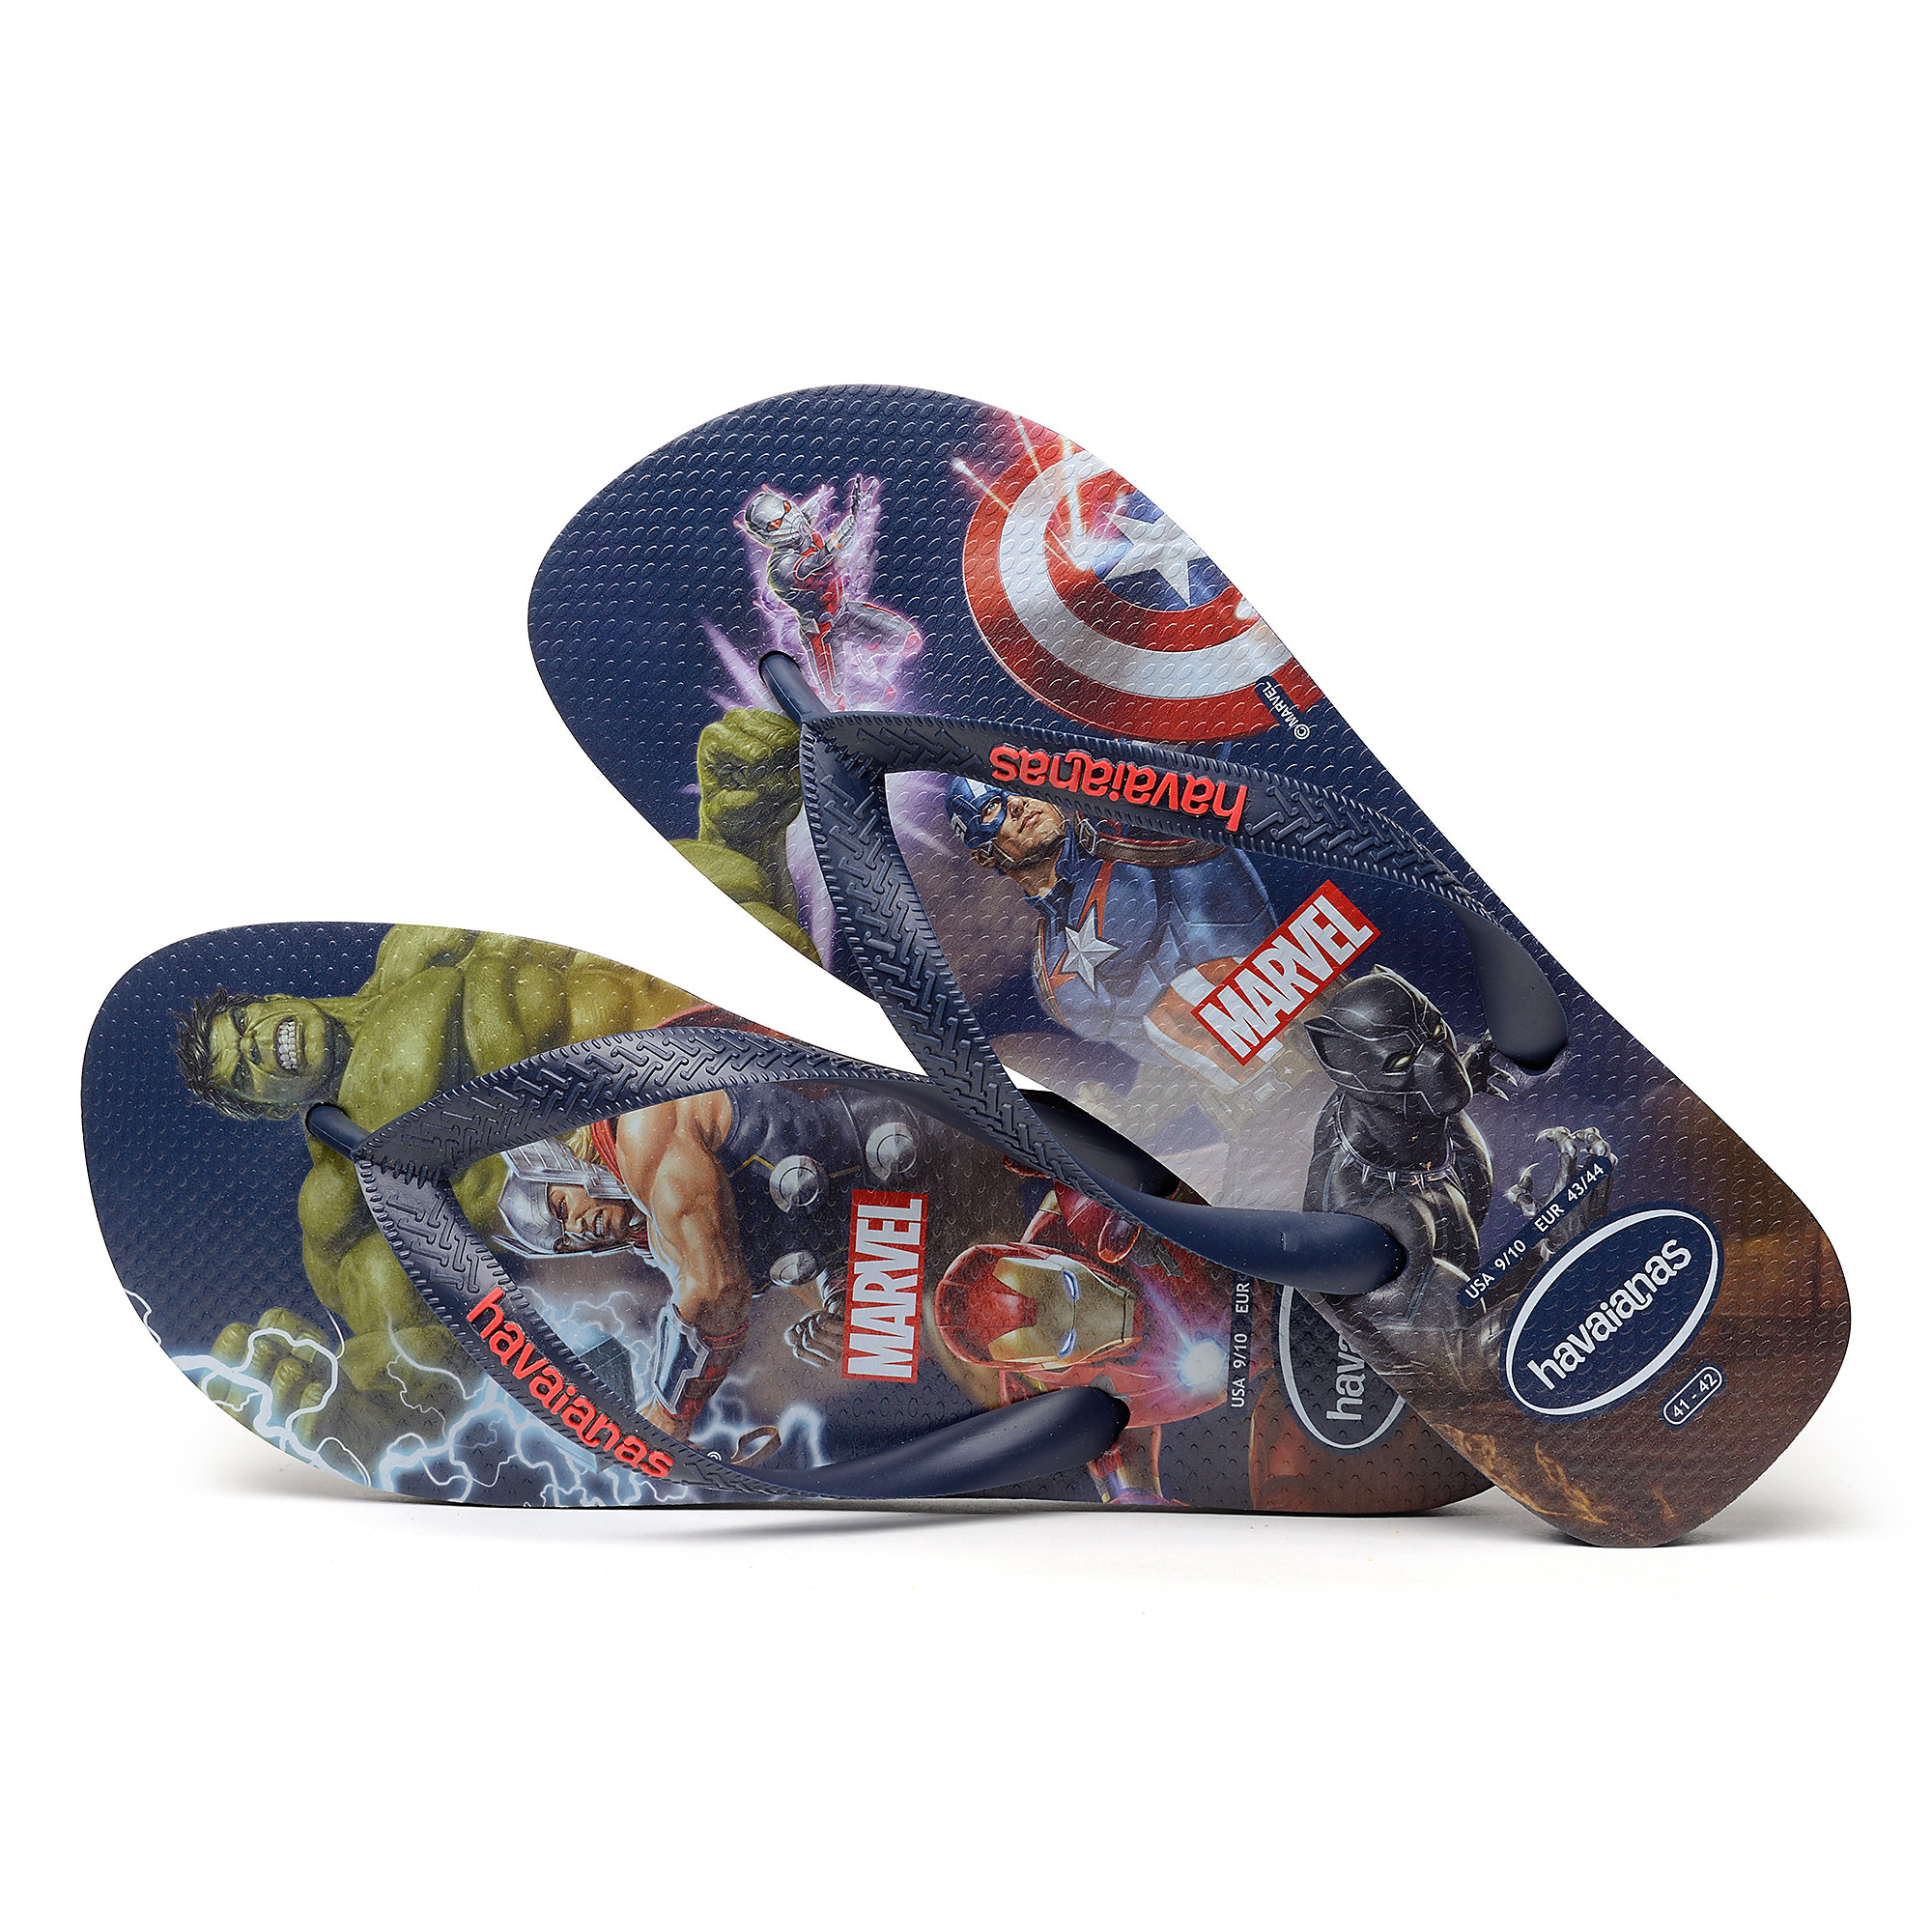 ce0f84be7a26 Marvel s Avengers Flip Flops for Men by Havaianas is available ...